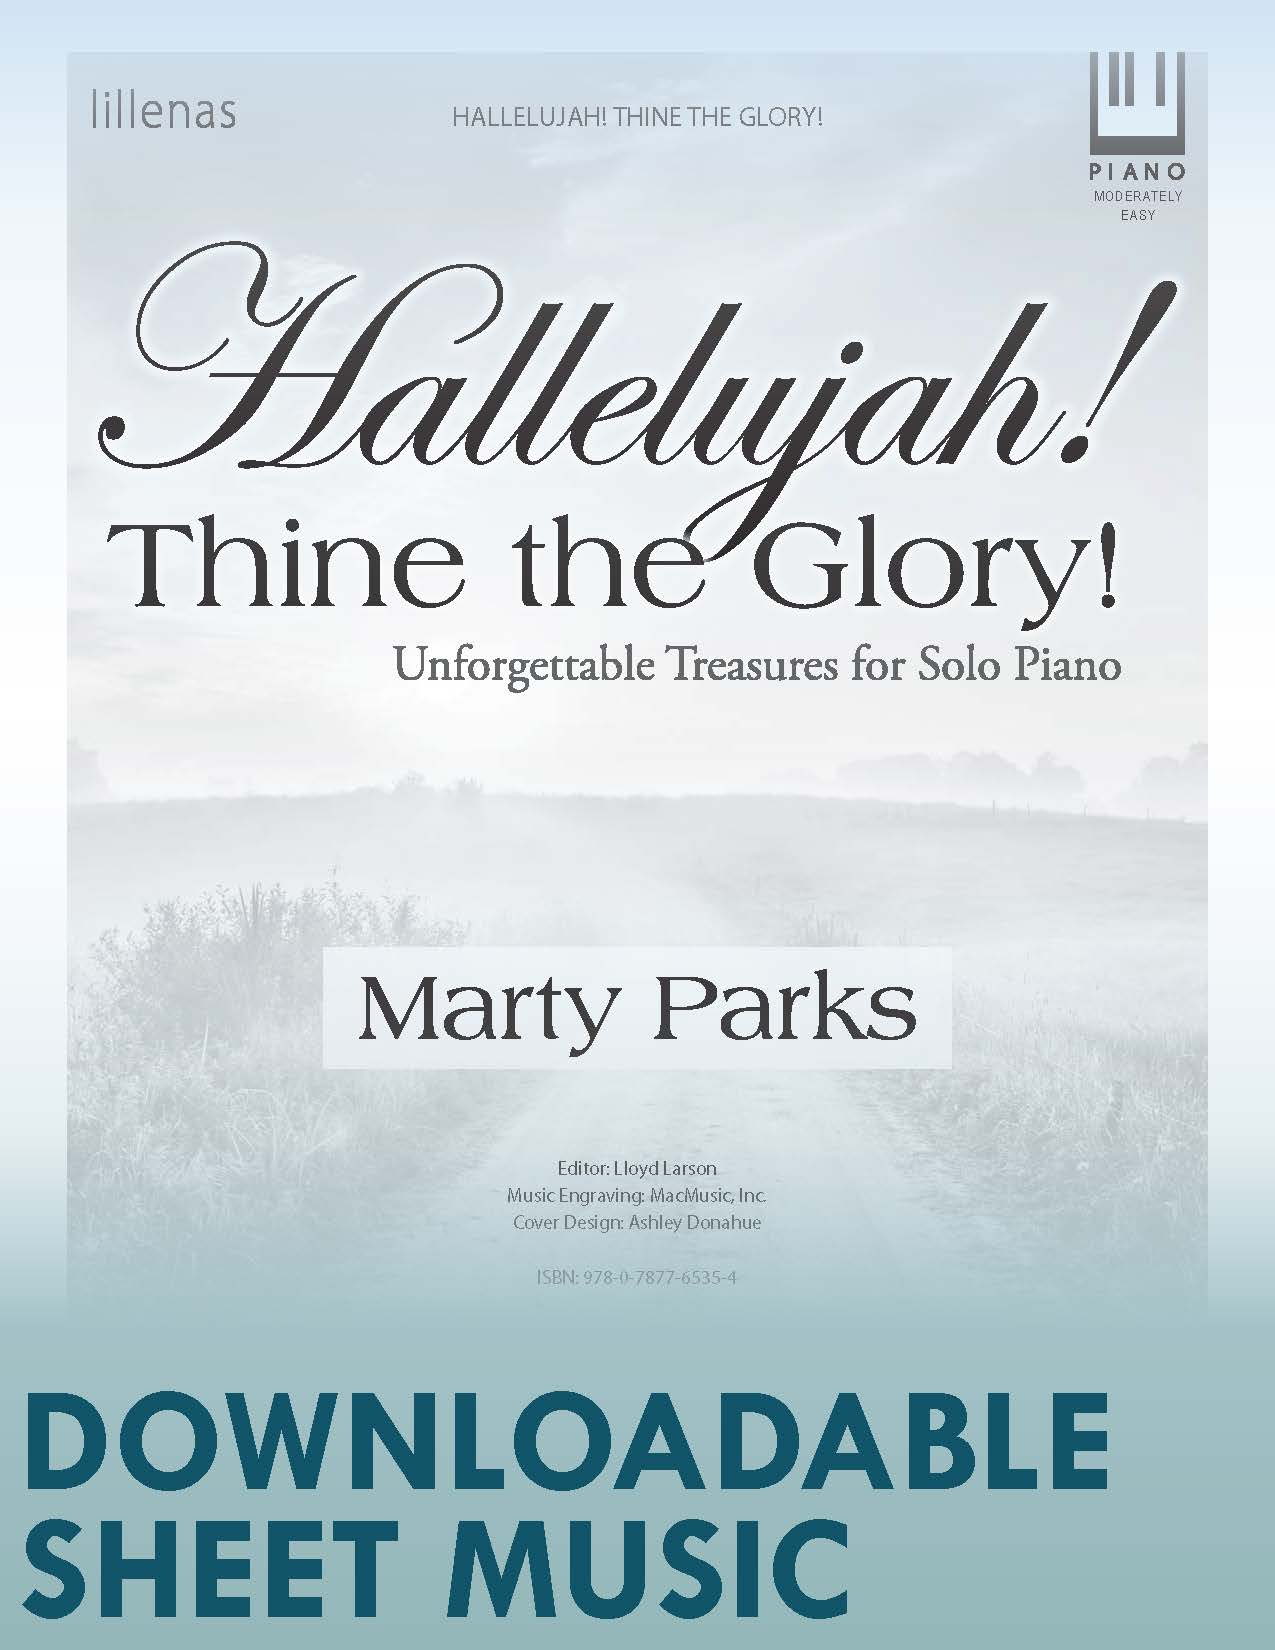 Hallelujah! Thine the Glory! - Digital Download